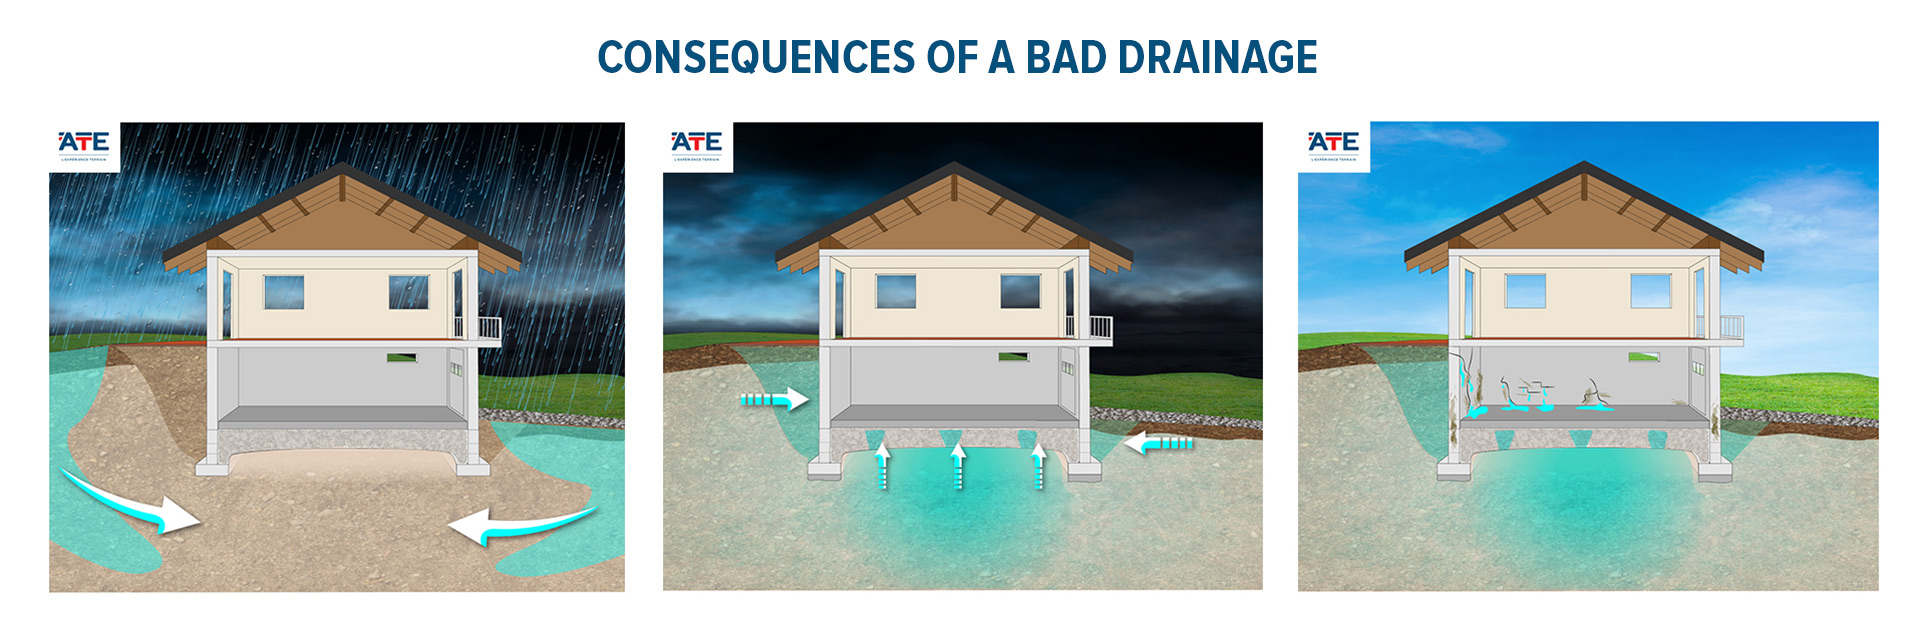 Consequences of a bad drainage